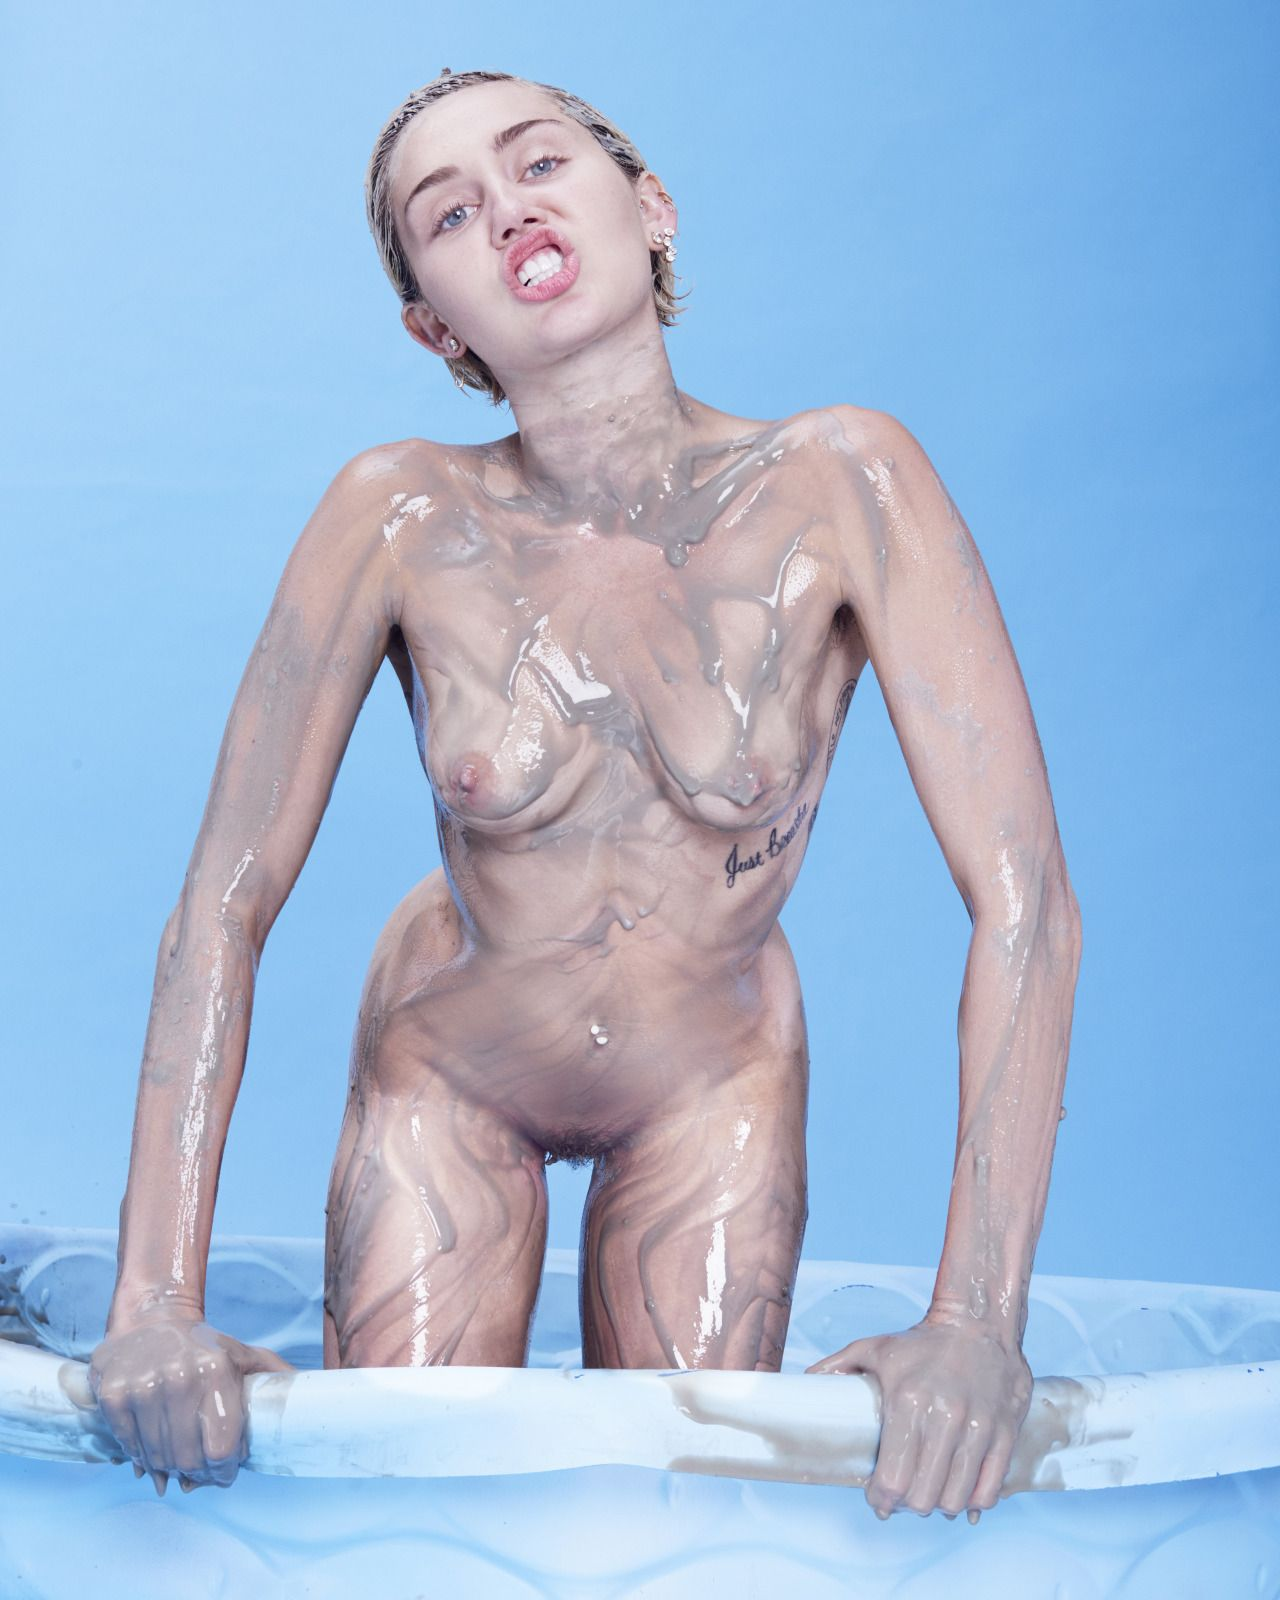 Miley cyrus sexy nude in the movie apologise, but